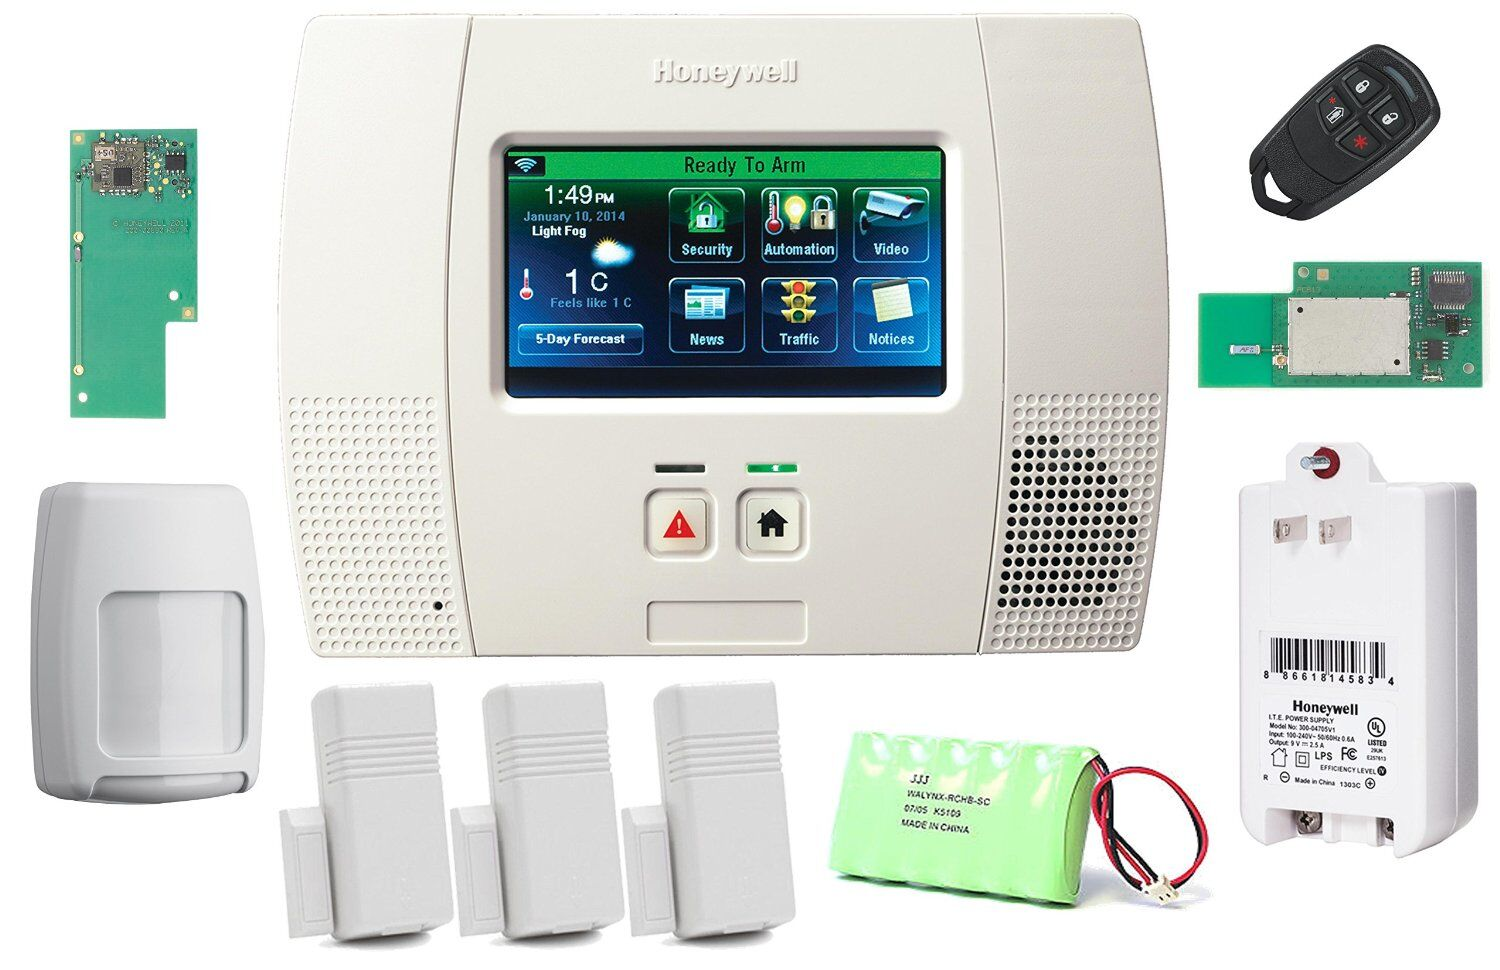 honeywell lynx touch l5200 wireless home security automation system. Black Bedroom Furniture Sets. Home Design Ideas